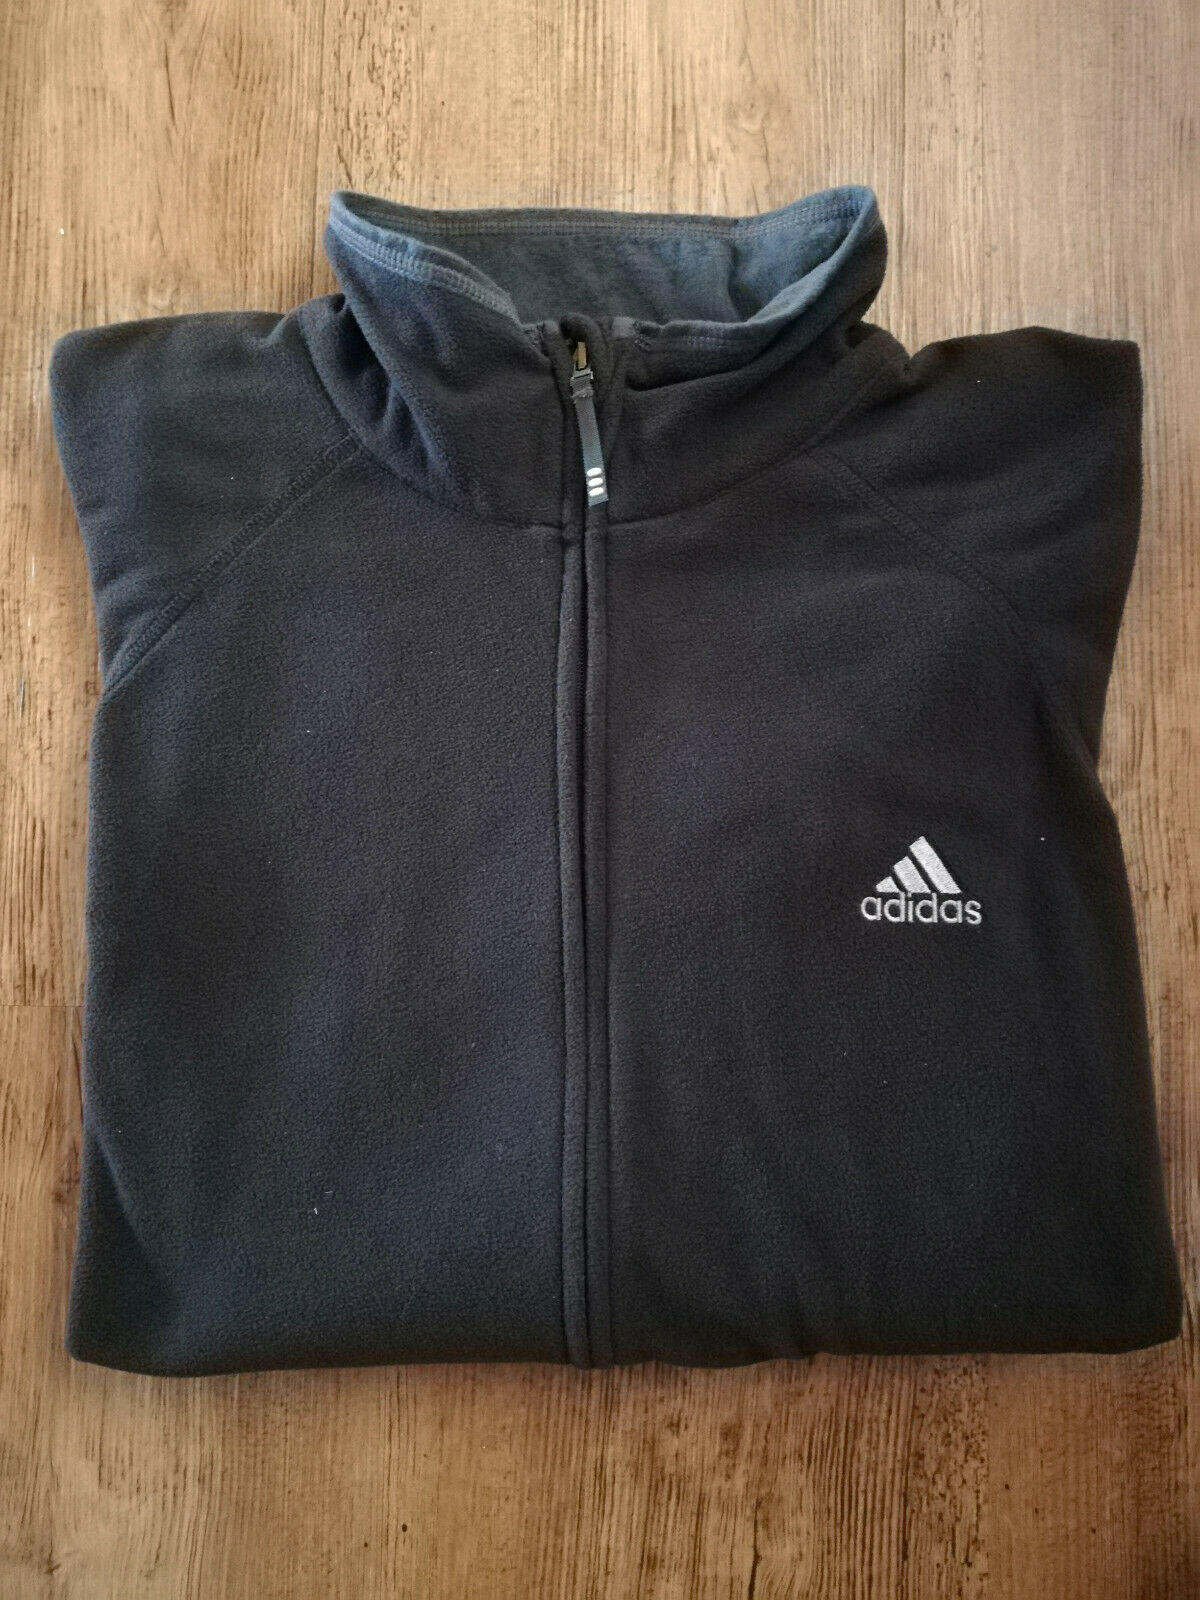 Adidas Giacca in Pile Uomo Sport Giacca in Pile Nero nuovo